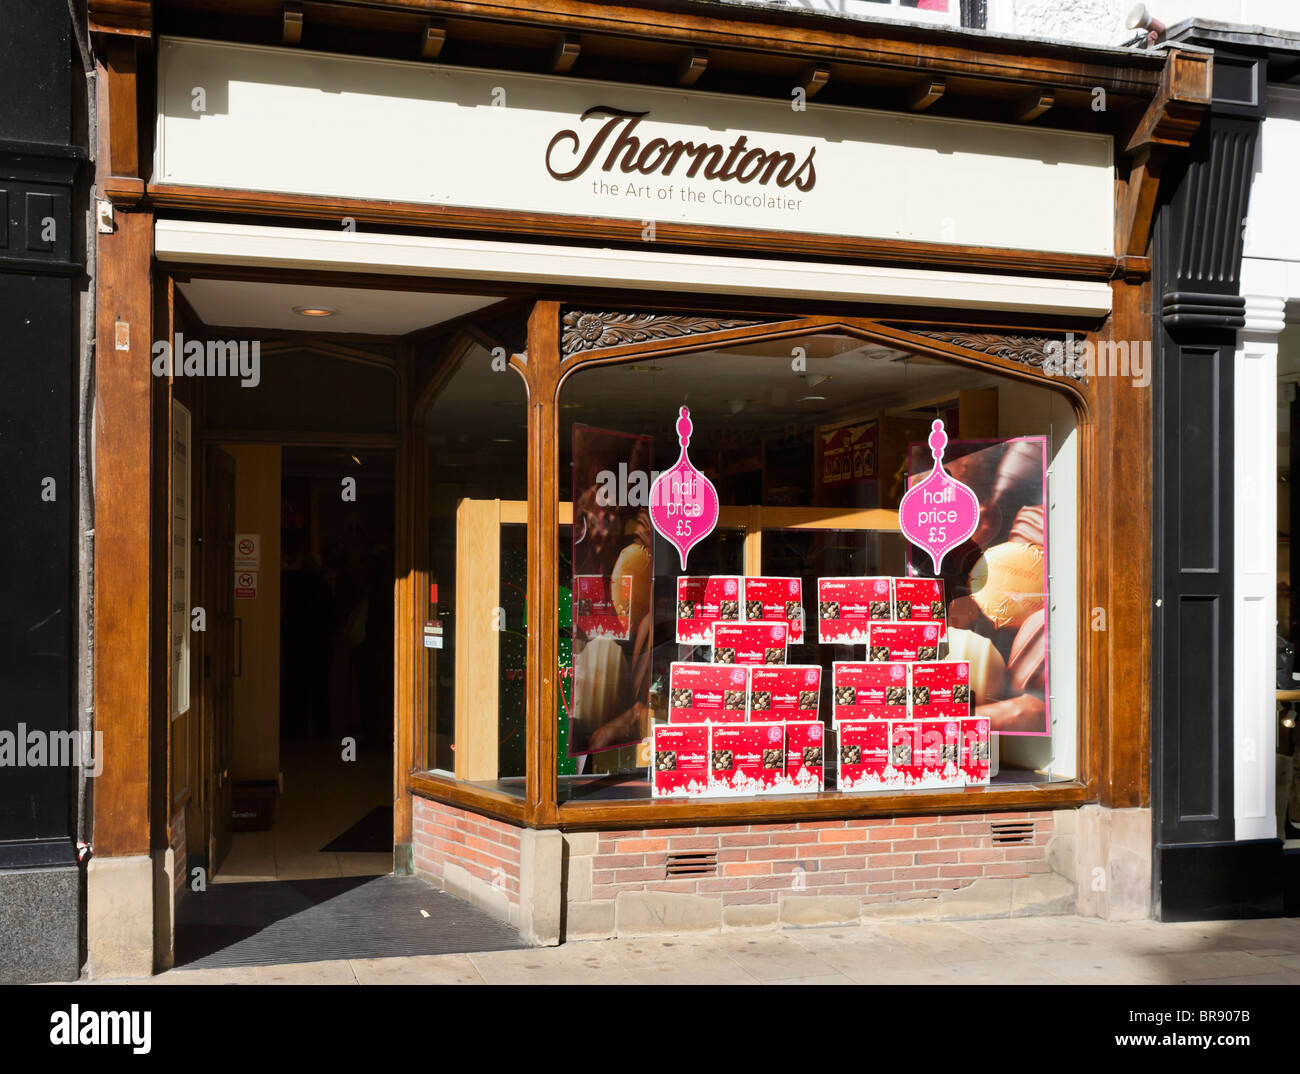 Thorntons chocolate shop in Chester town centre, Cheshire, England, UK - Stock Image